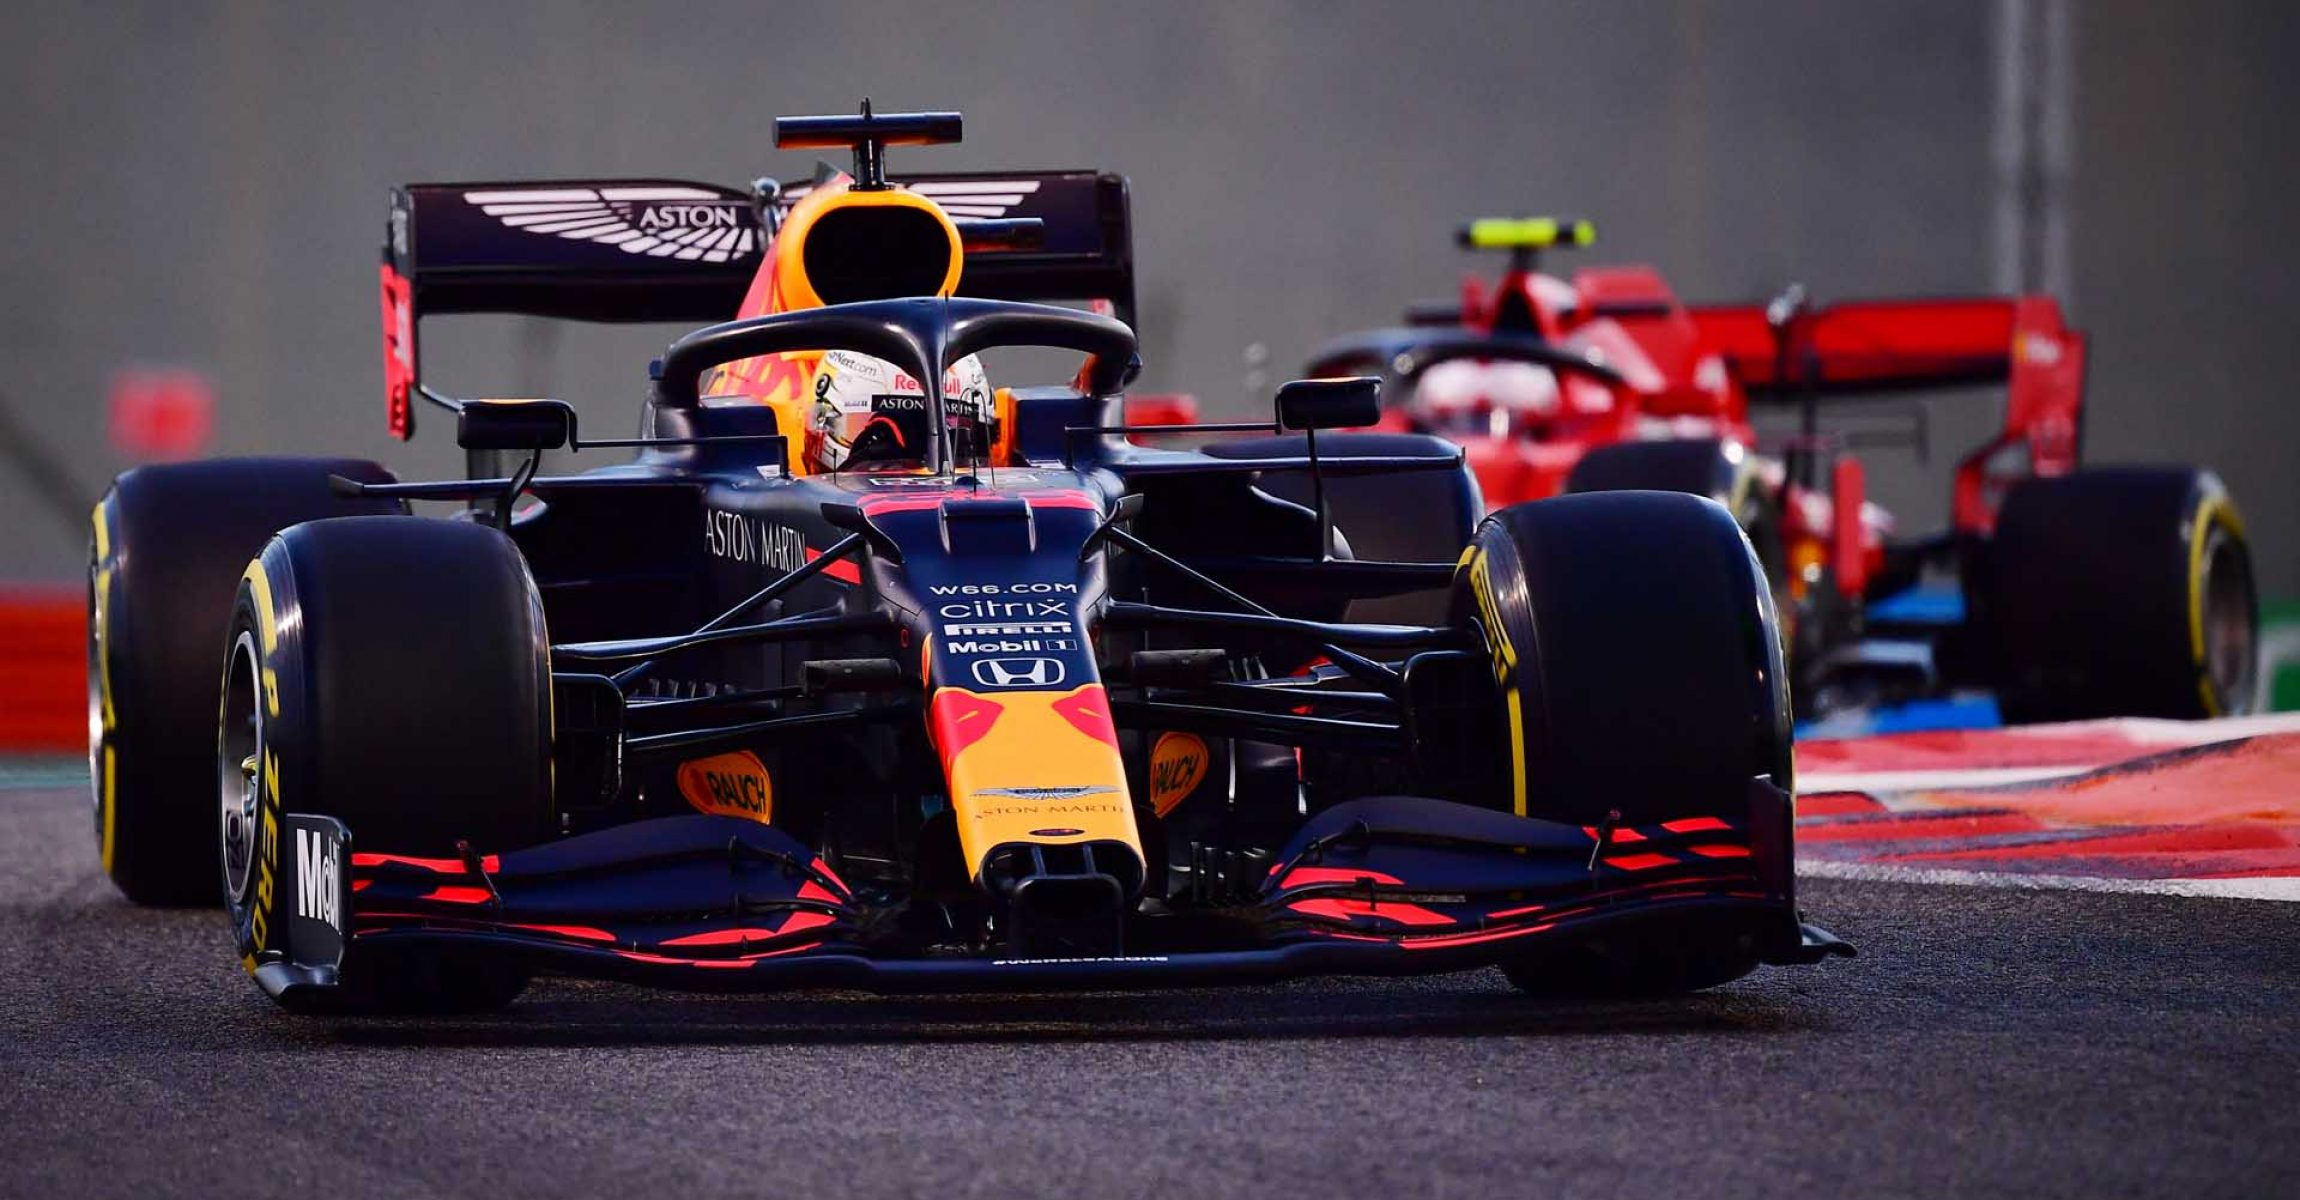 ABU DHABI, UNITED ARAB EMIRATES - DECEMBER 11: Max Verstappen of the Netherlands driving the (33) Aston Martin Red Bull Racing RB16 on track during practice ahead of the F1 Grand Prix of Abu Dhabi at Yas Marina Circuit on December 11, 2020 in Abu Dhabi, United Arab Emirates. (Photo by Giuseppe Cacace - Pool/Getty Images)